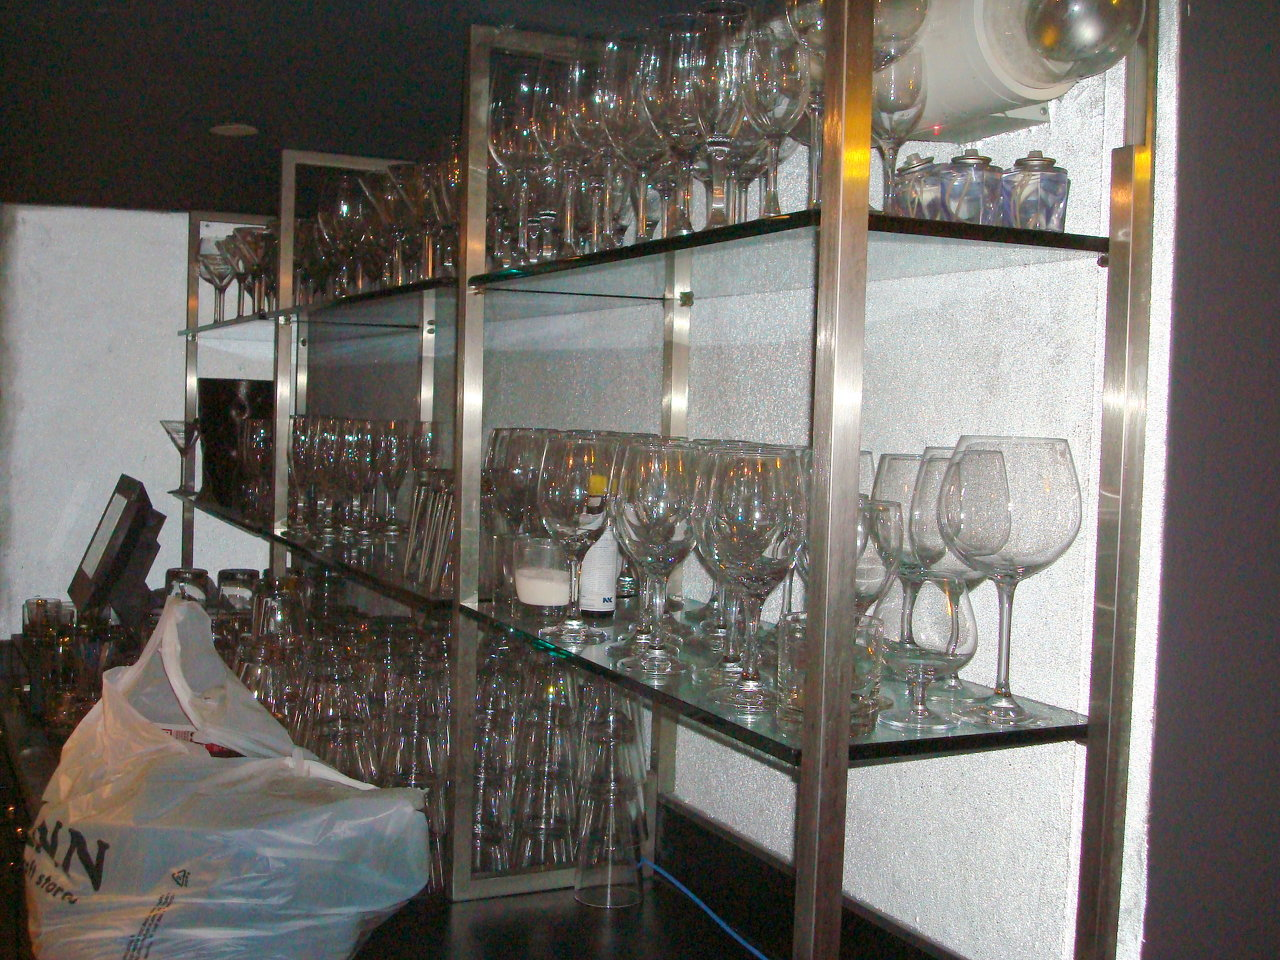 Stainless Steel & Glass Shelving